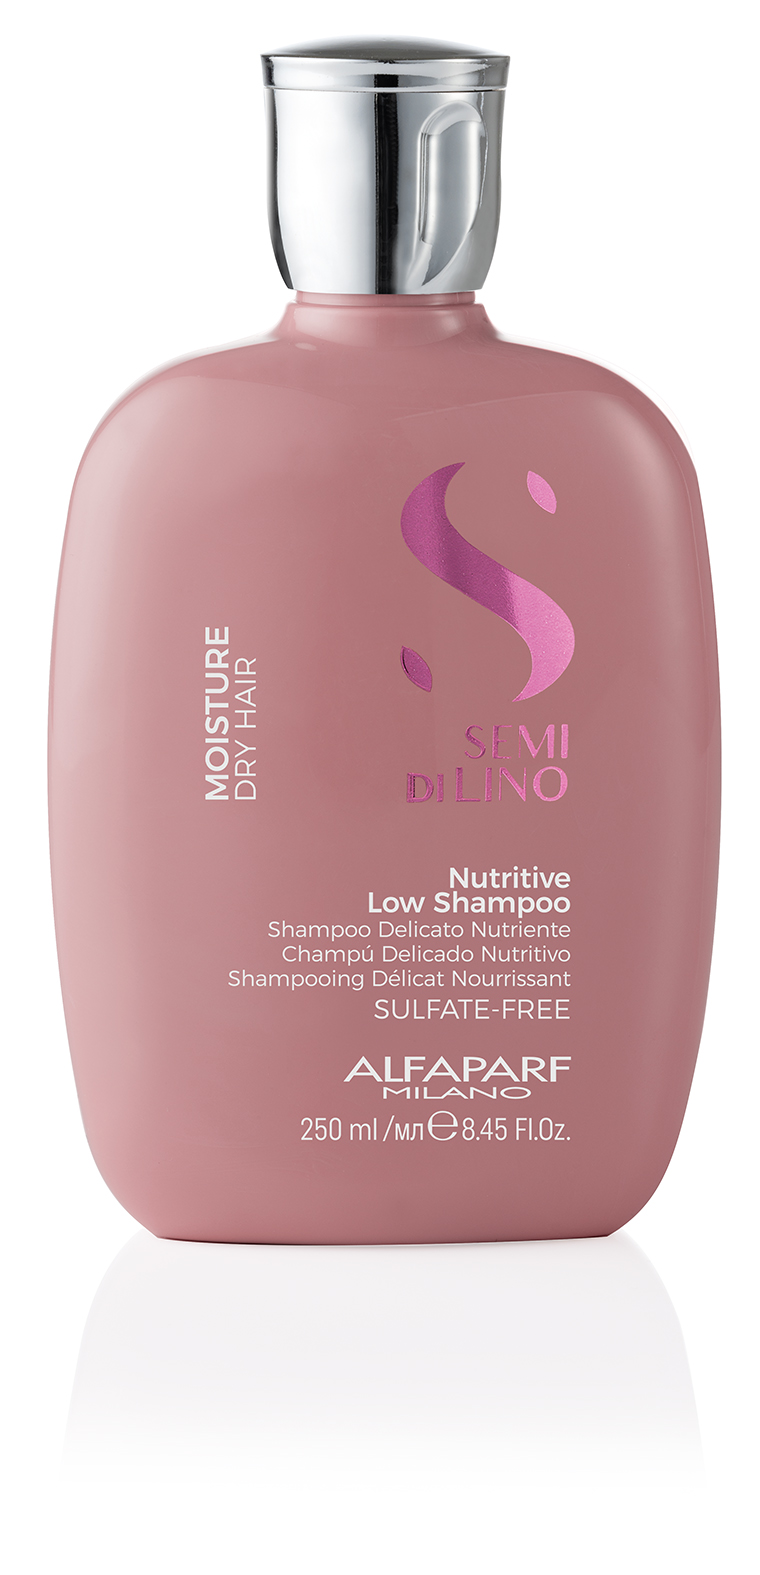 NUTRITIVE LOW SHAMPOO    DESCRIPTION   Gently cleanses Nourishes  SULFATE FREE LIGHTNESS    FORMAT   Bottle 250ml